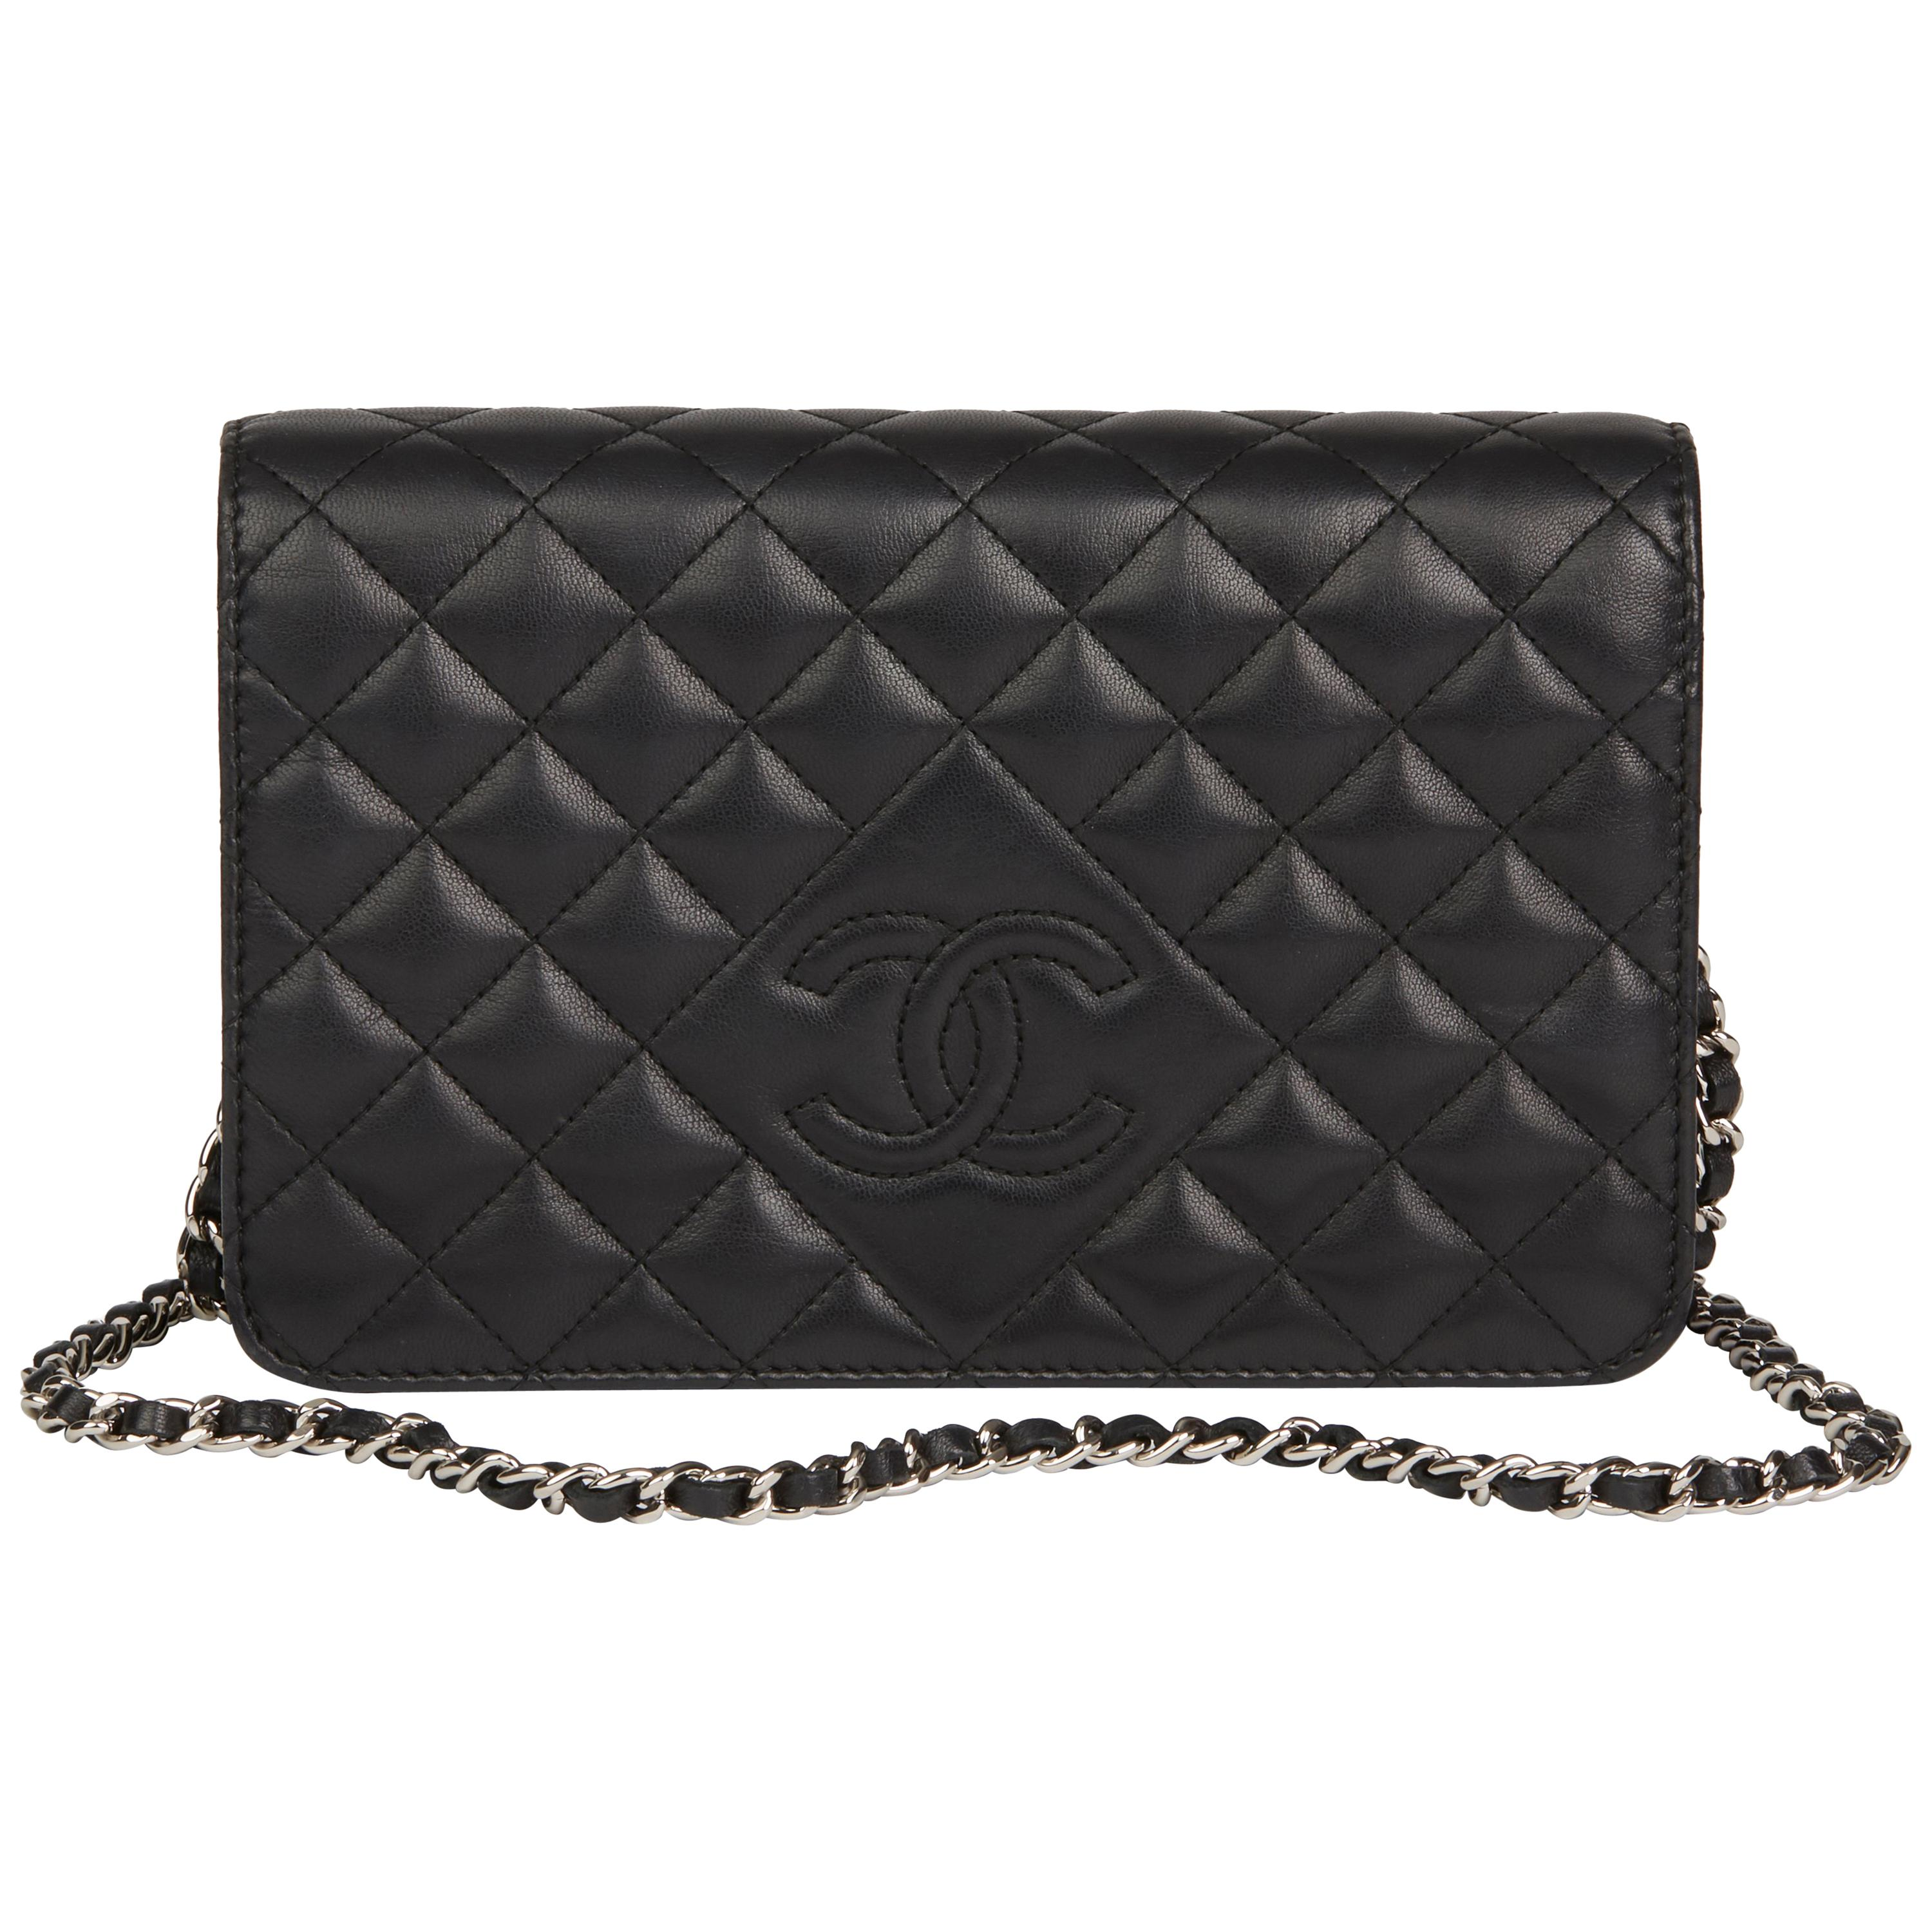 af4e55ba848c 2013 Chanel Black Quilted Lambskin Diamond CC Wallet on Chain at 1stdibs